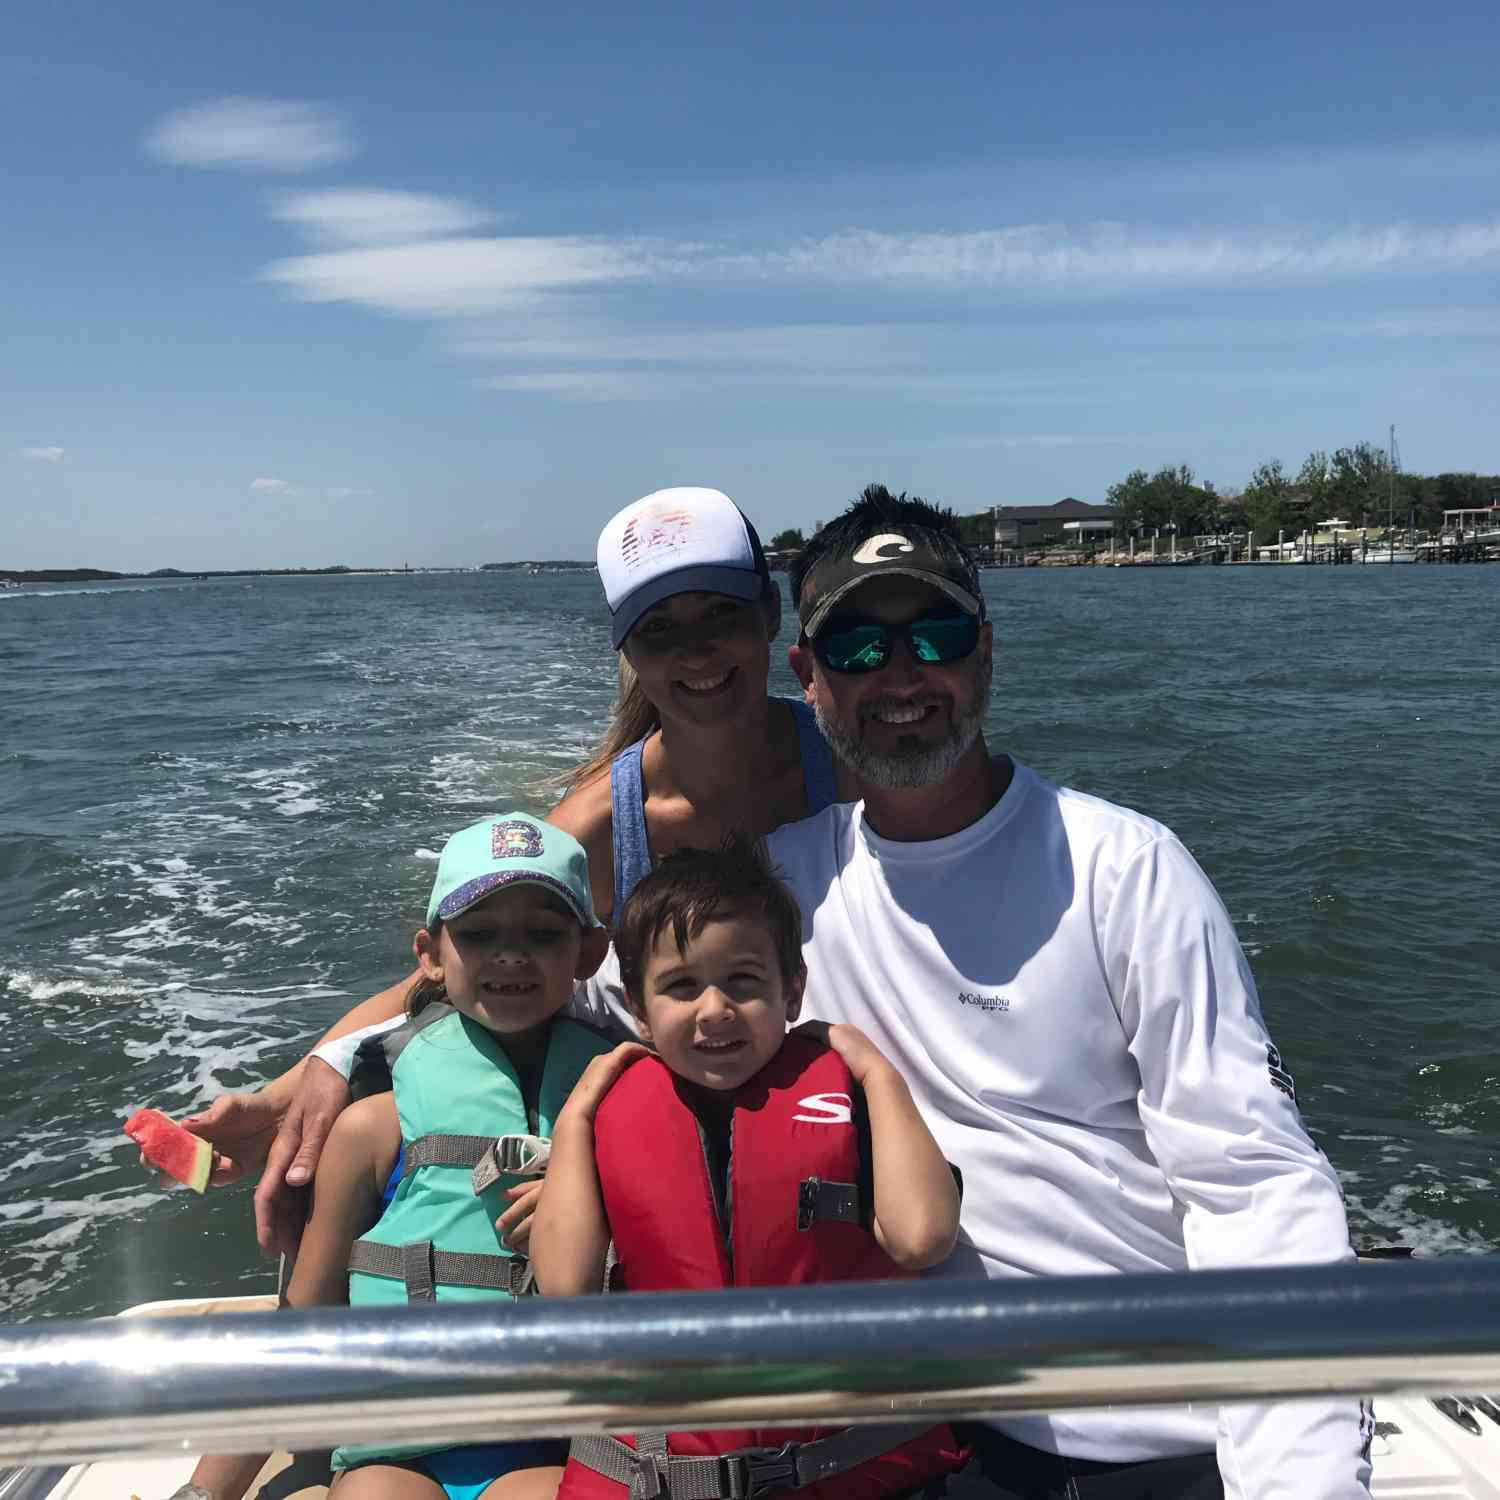 Title: Family time - On board their Sportsman Tournament 214 Bay Boat - Location: New Symrna Beach, FL. Participating in the Photo Contest #SportsmanJune2018